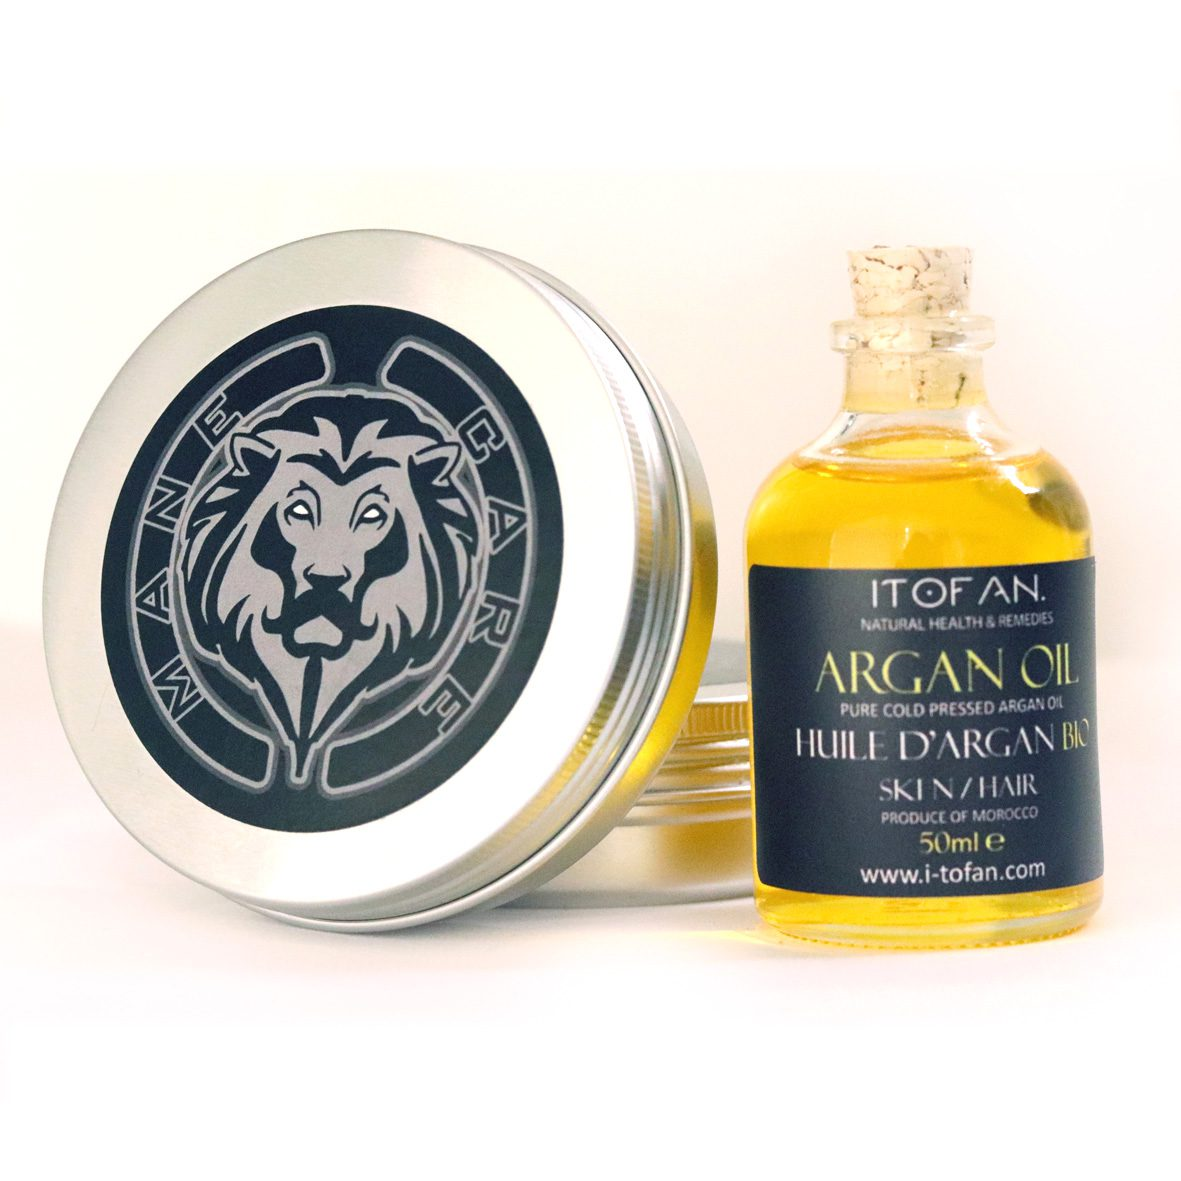 beard care, beard grooming kit, gifts for him, valentines gifts for him